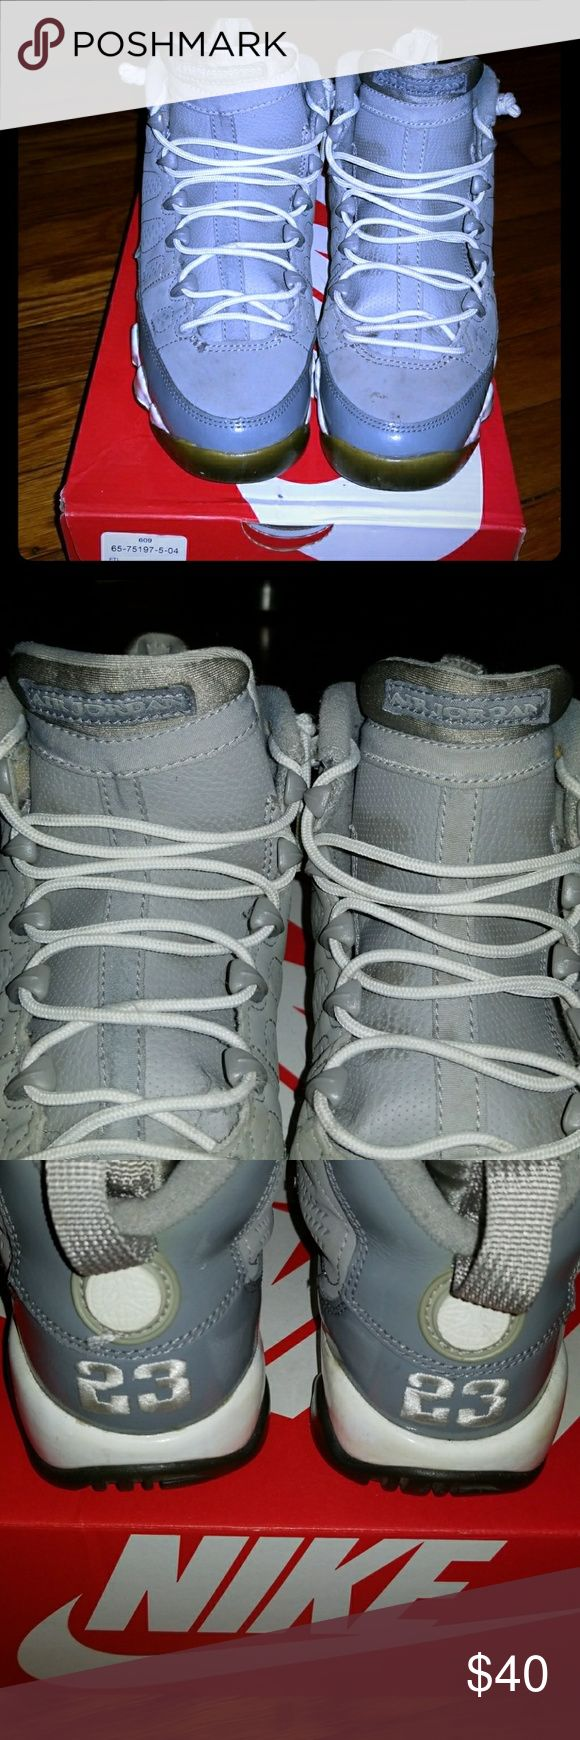 Air Jordan Cool Grey 11s Worn Cool Grey 11s. Good condition 6/10. SIZE 3.5 kids. 100% Authentic. Jordan Shoes Sneakers